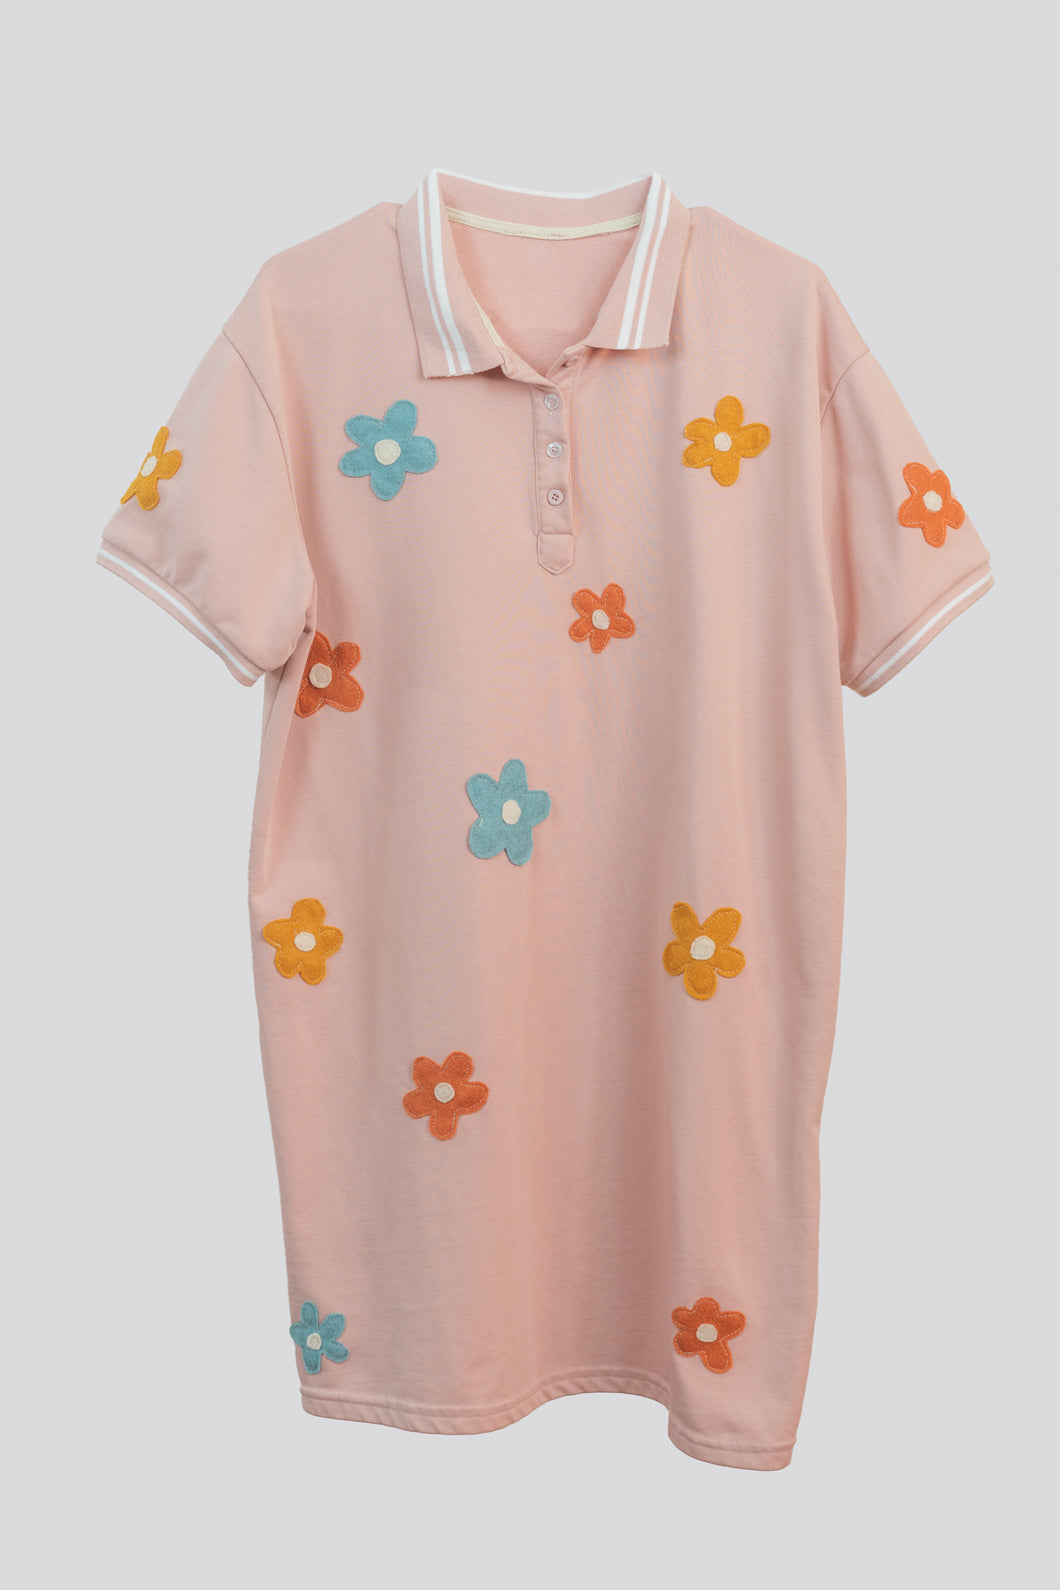 Daisy Darling T Shirt Dress (Pink)